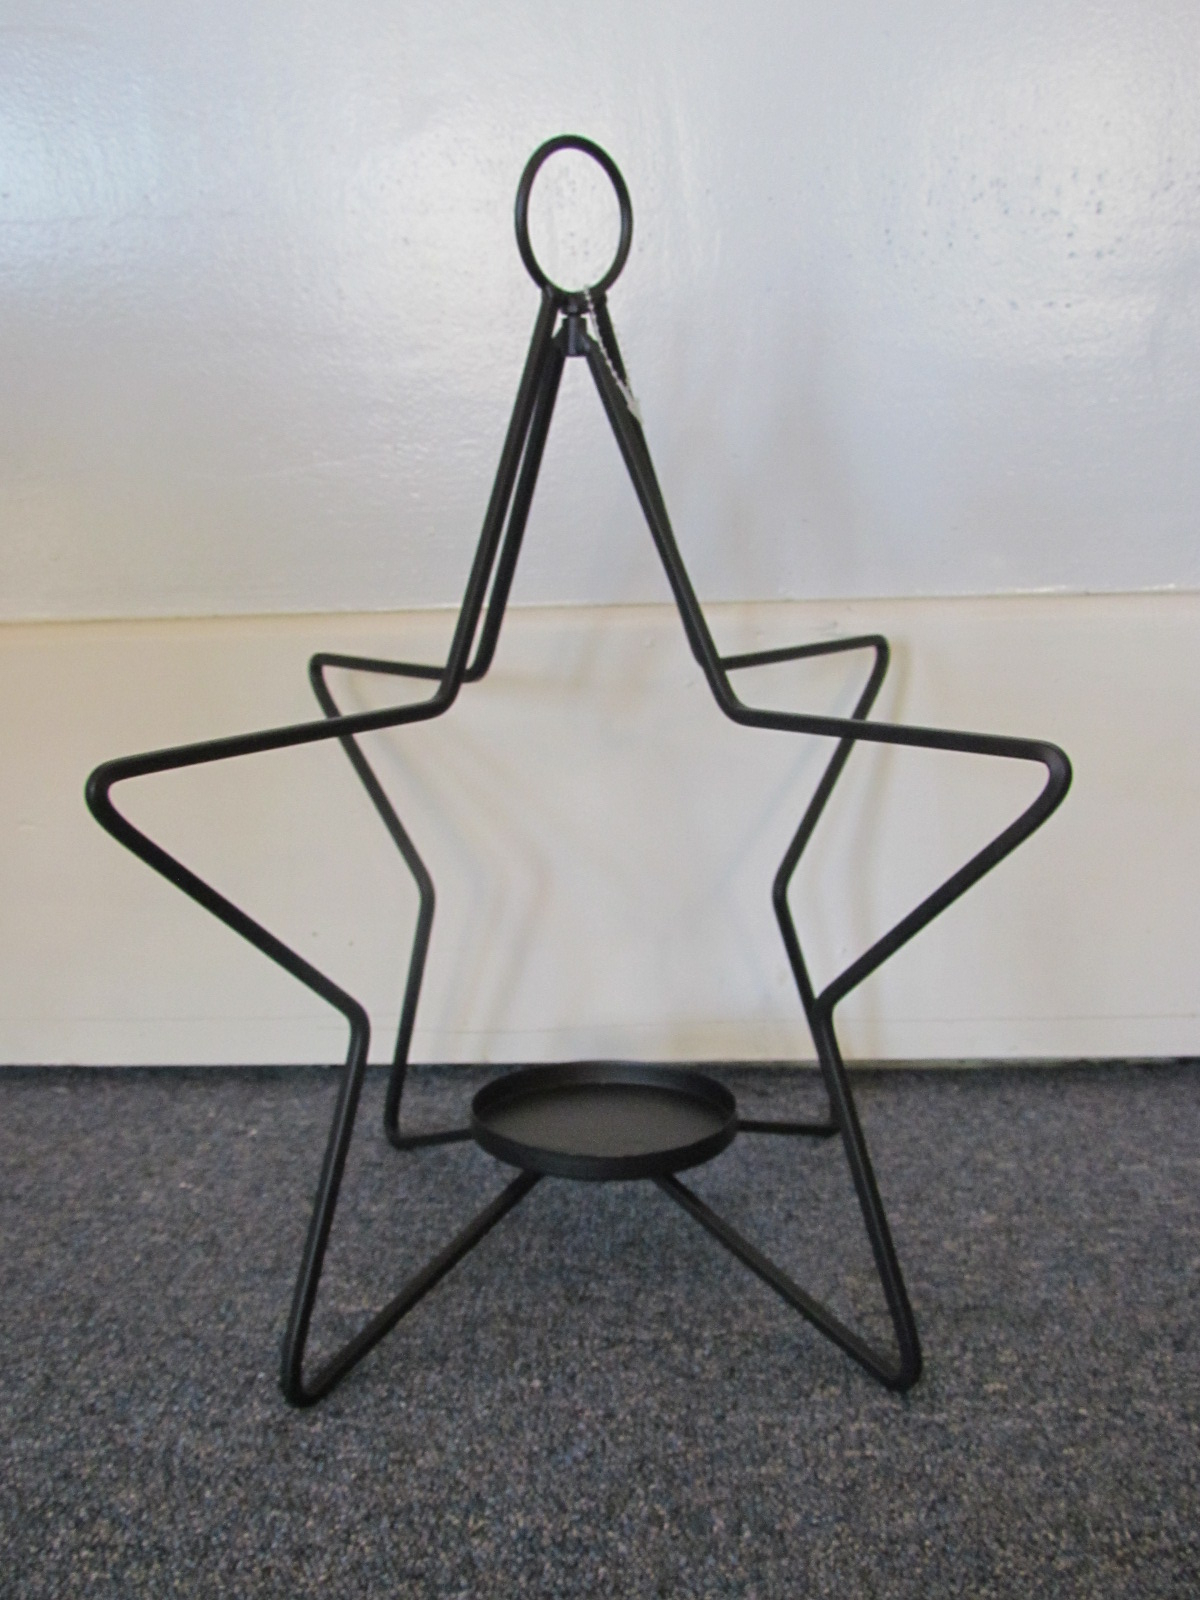 Hanging Star Candle Holder Large $4 / Day